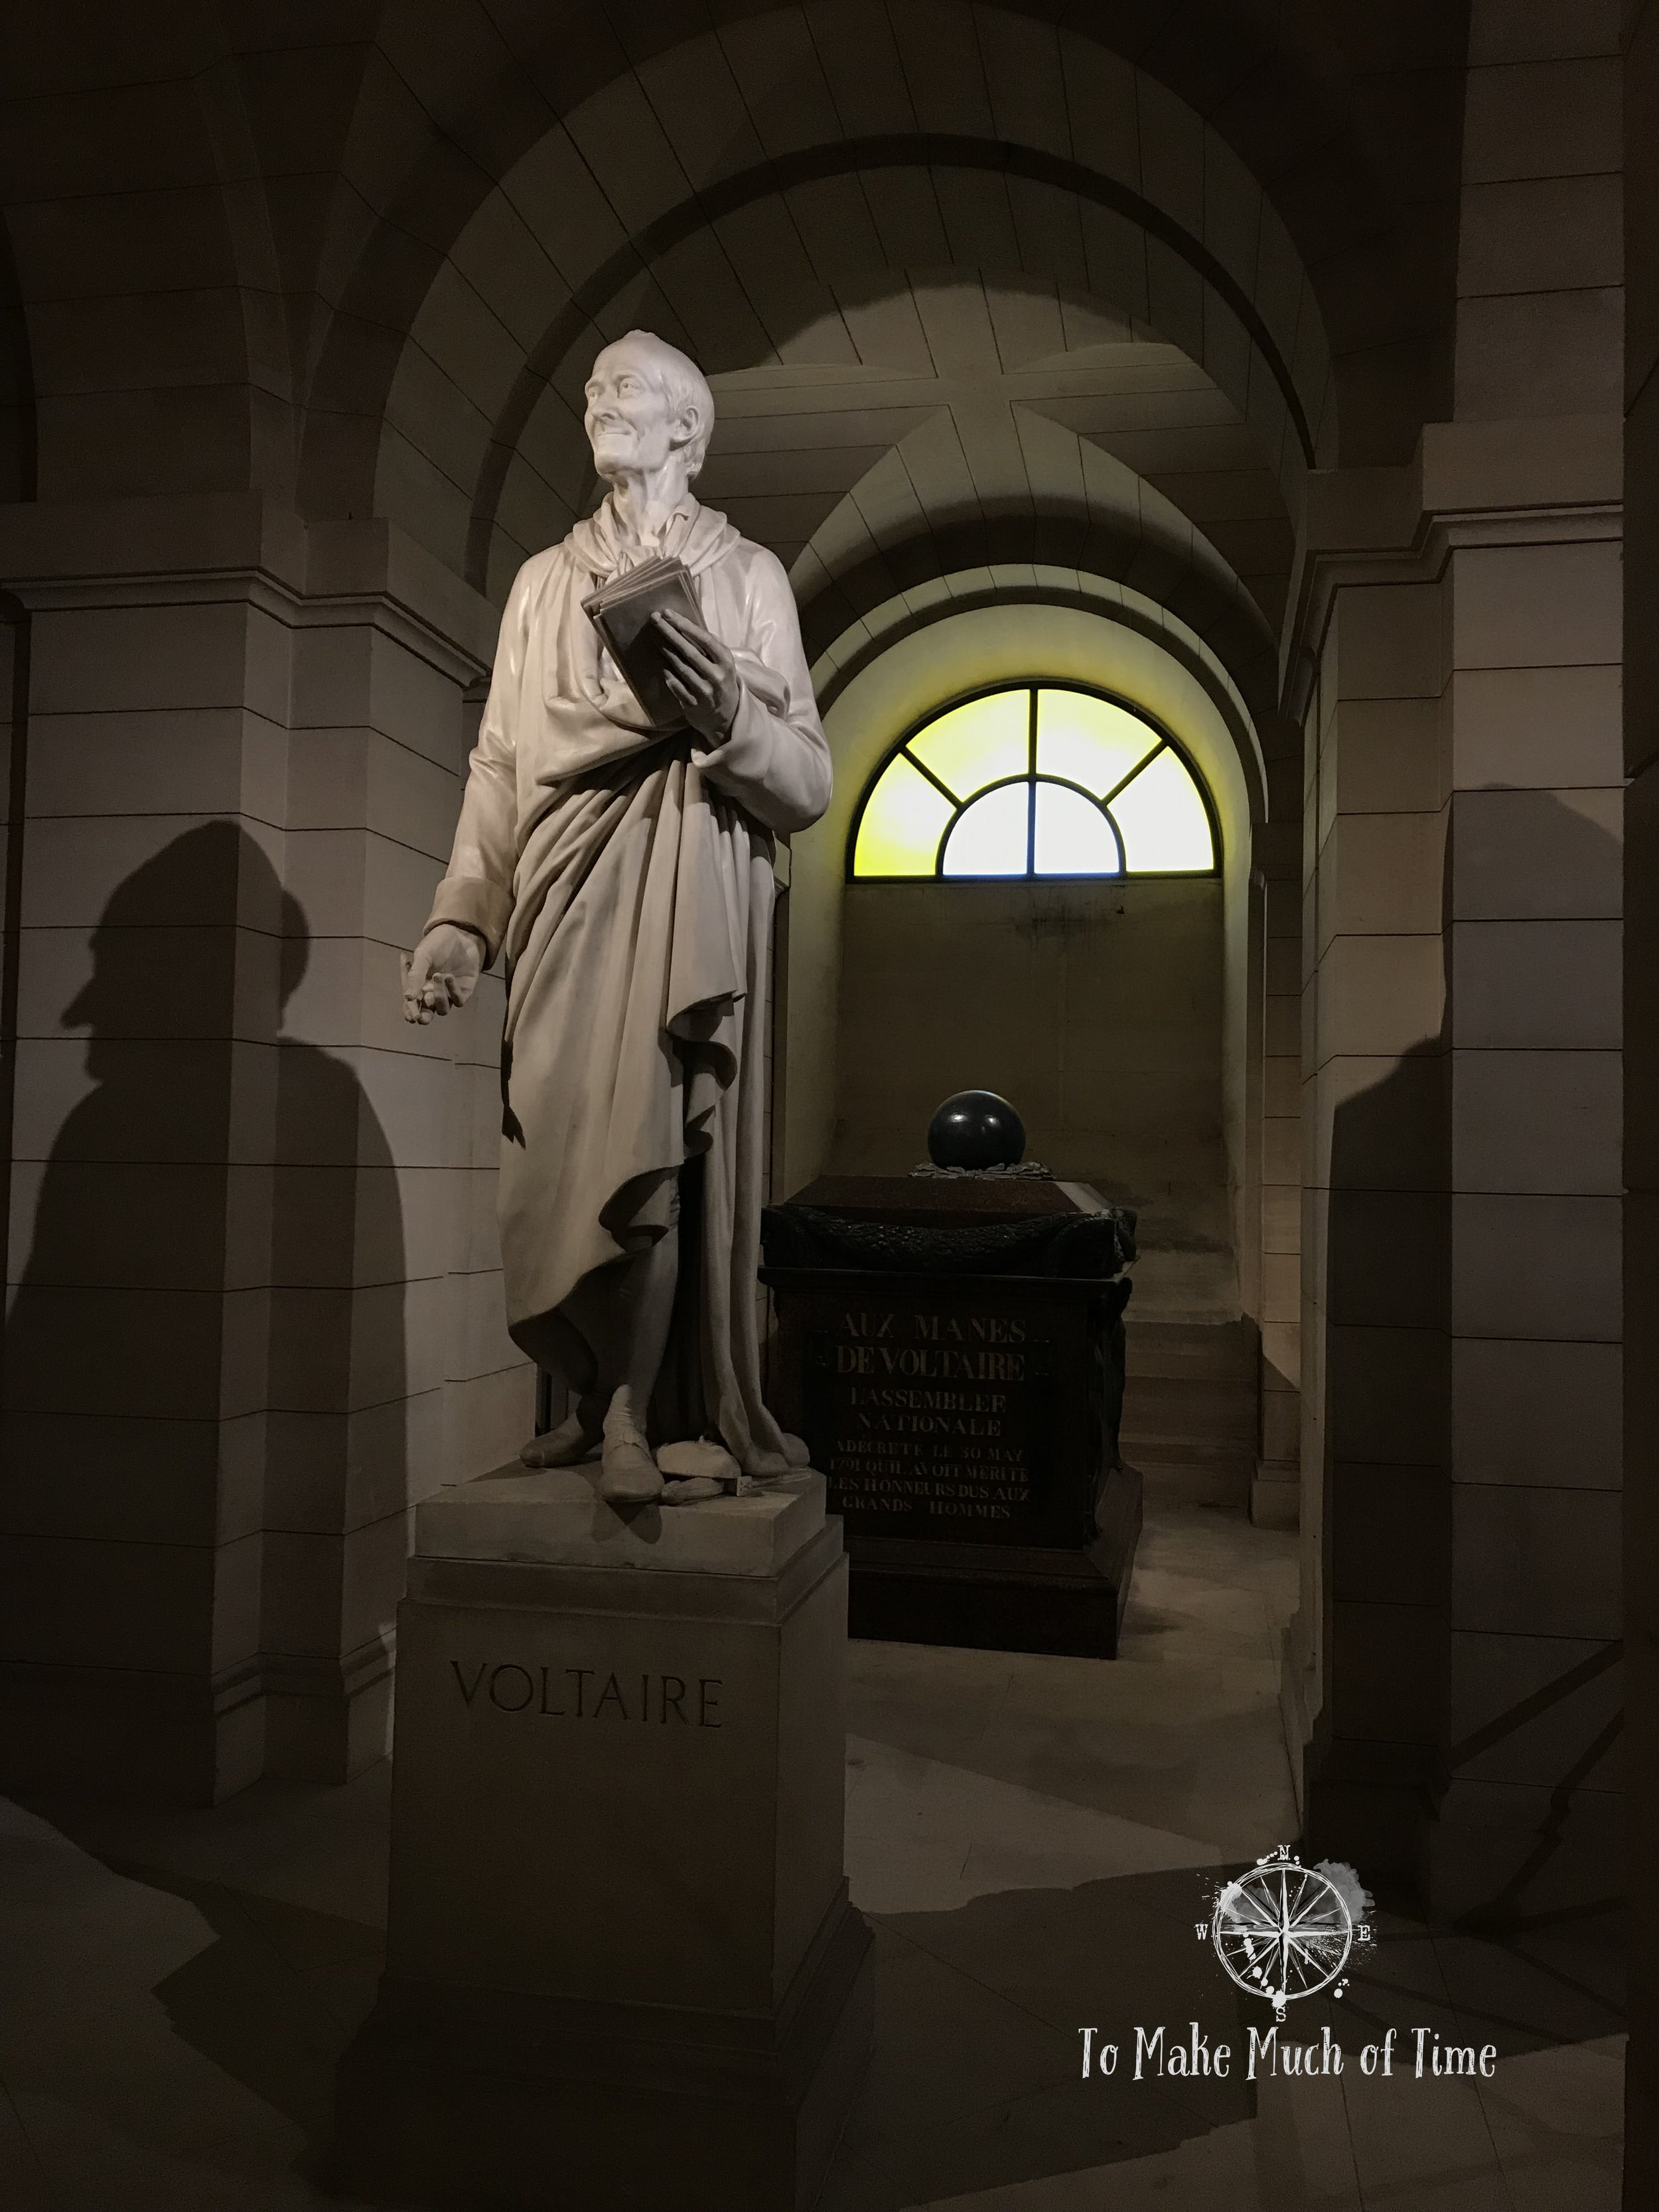 Voltaire holds a position of particular honor in the crypts below the Pantheon.